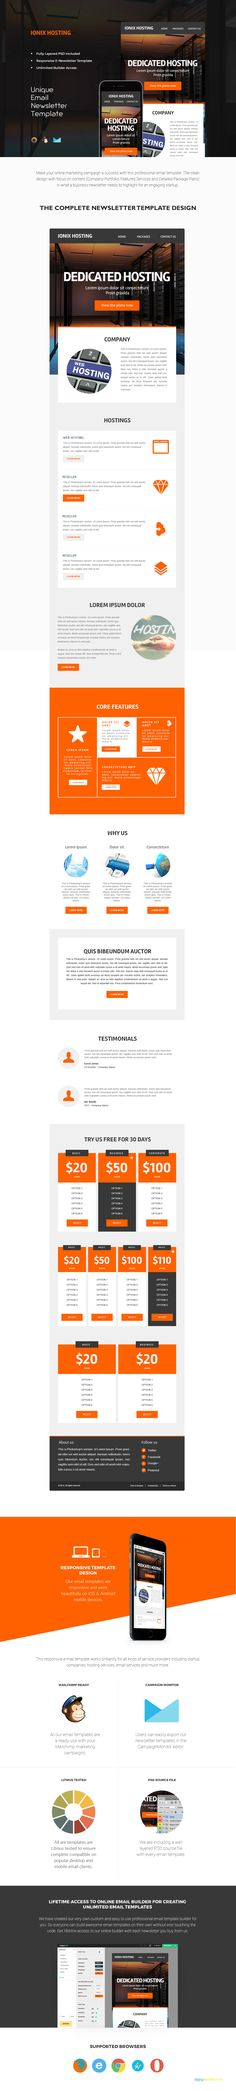 14 Email Newsletter Templates Bundle Newsletter templates, Email - example of newsletter templates